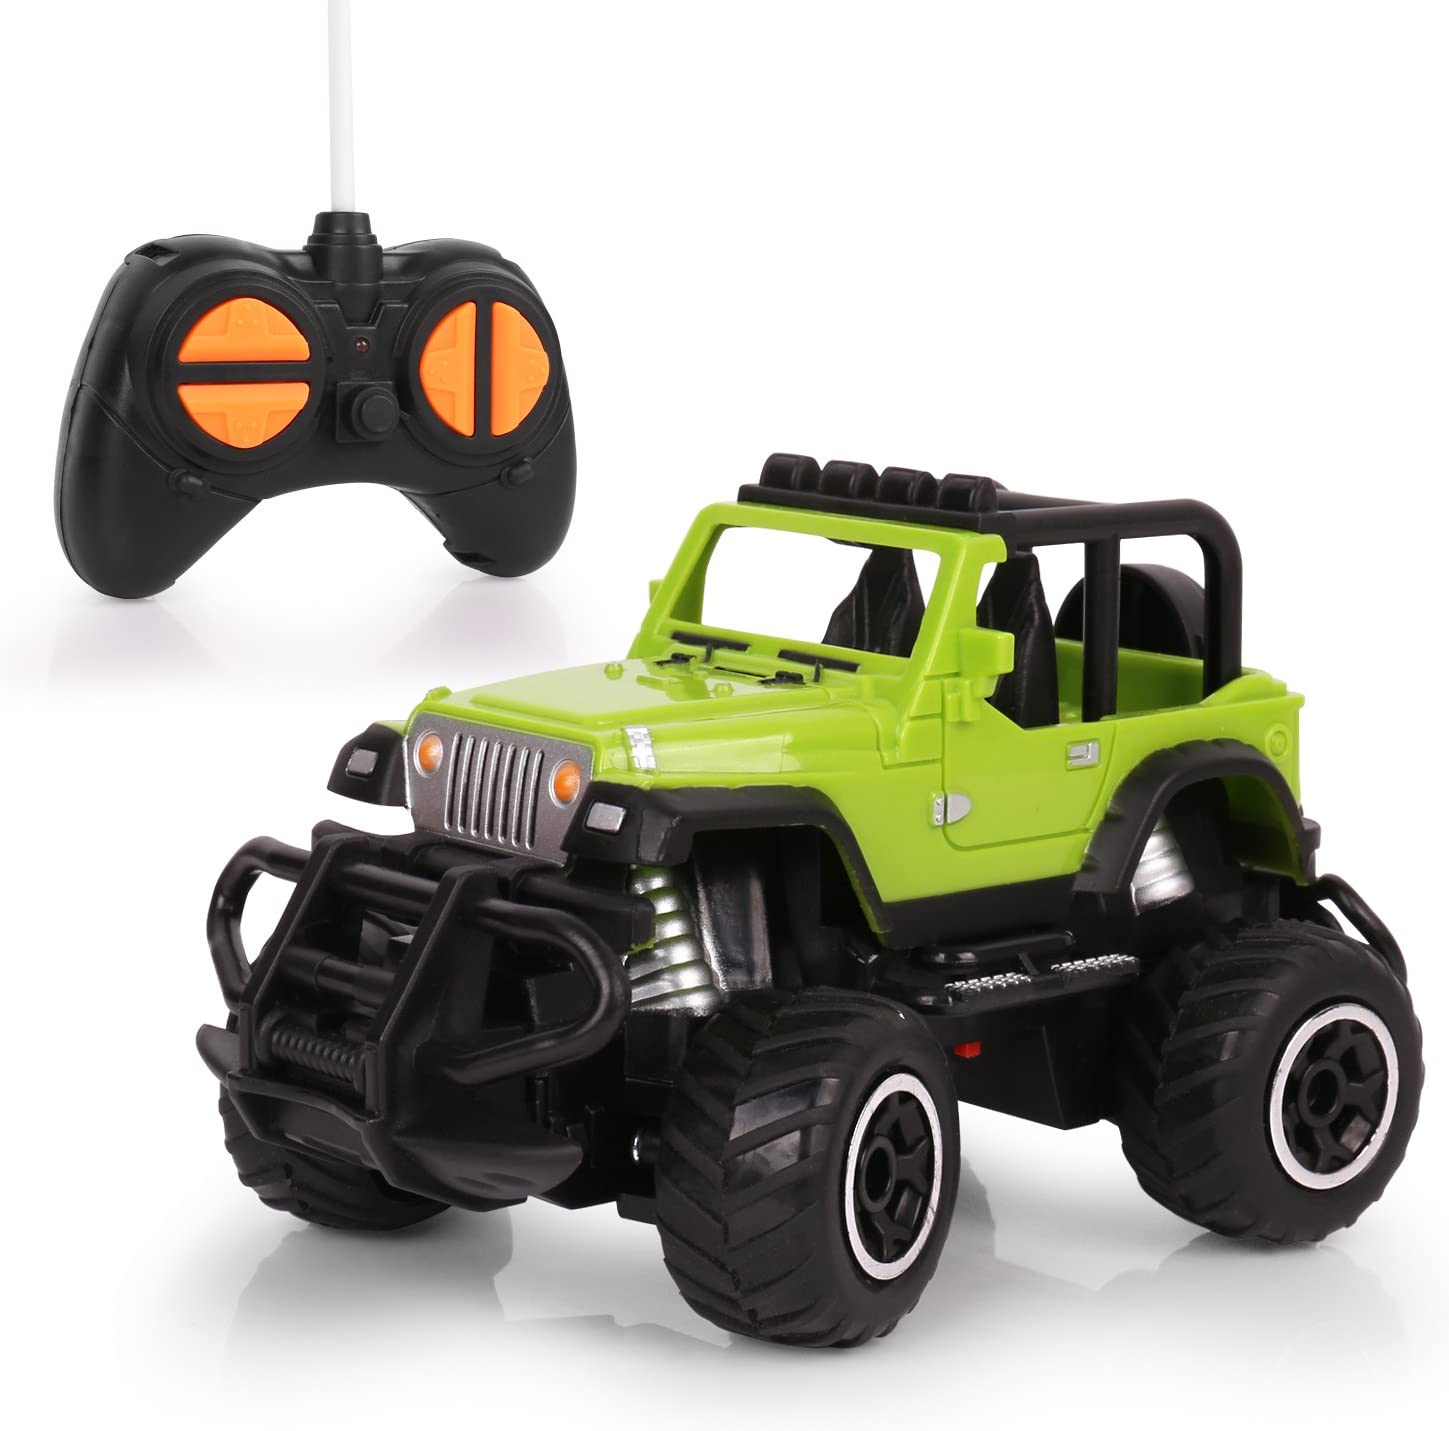 HALOFUN Remote Control Car, Mini RC Cars for Kids, Jeep Vehicle Sport Racing Hobby 1:43 Scale for Boys Girls